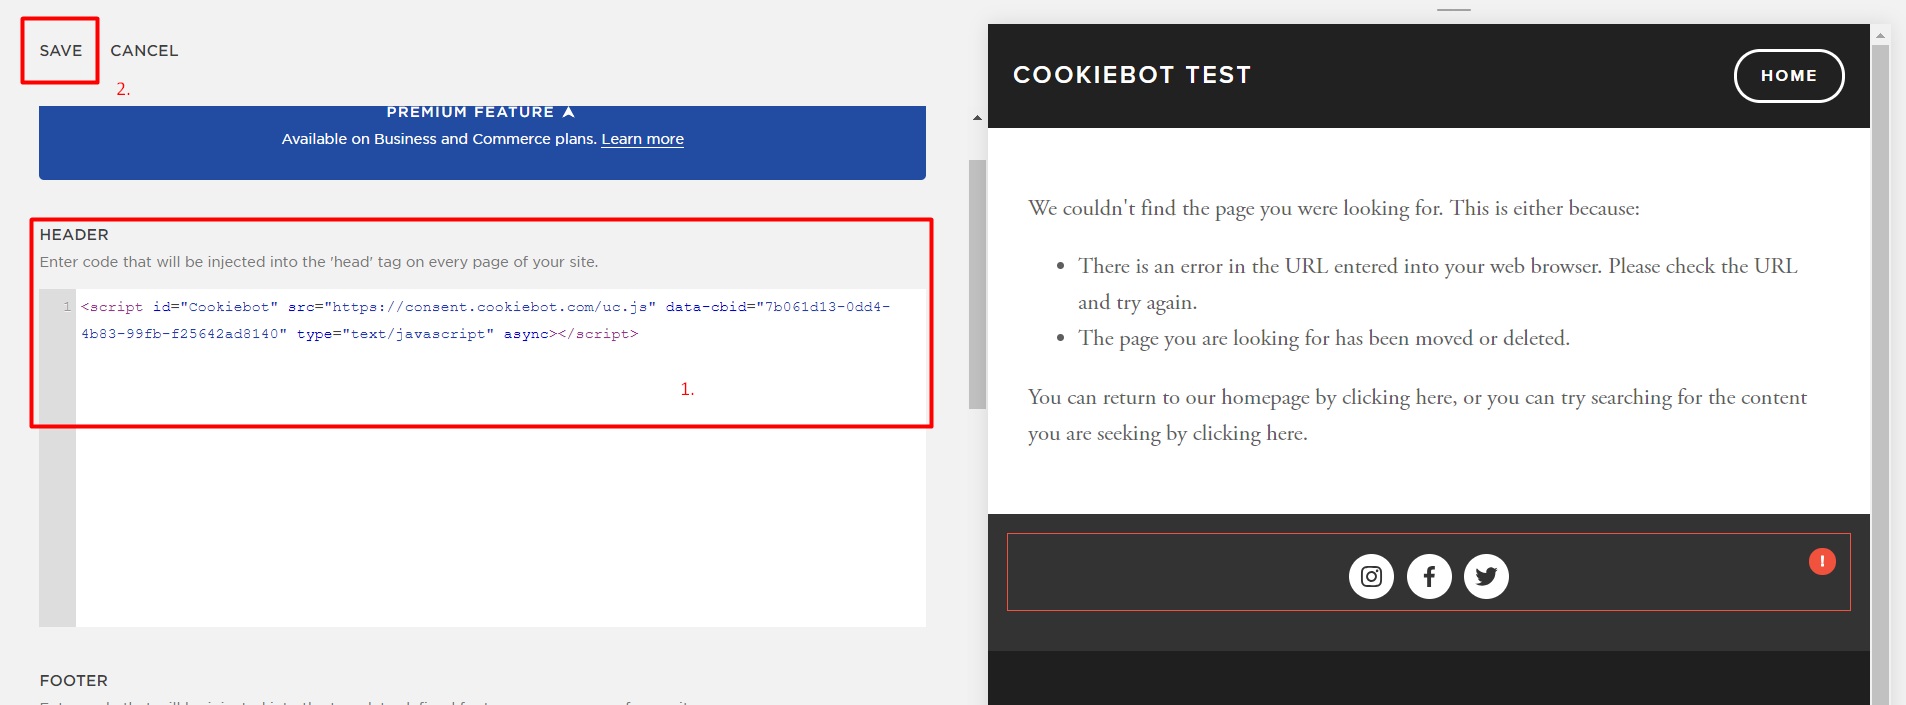 Cookiebot and Squarespace – Cookiebot Support